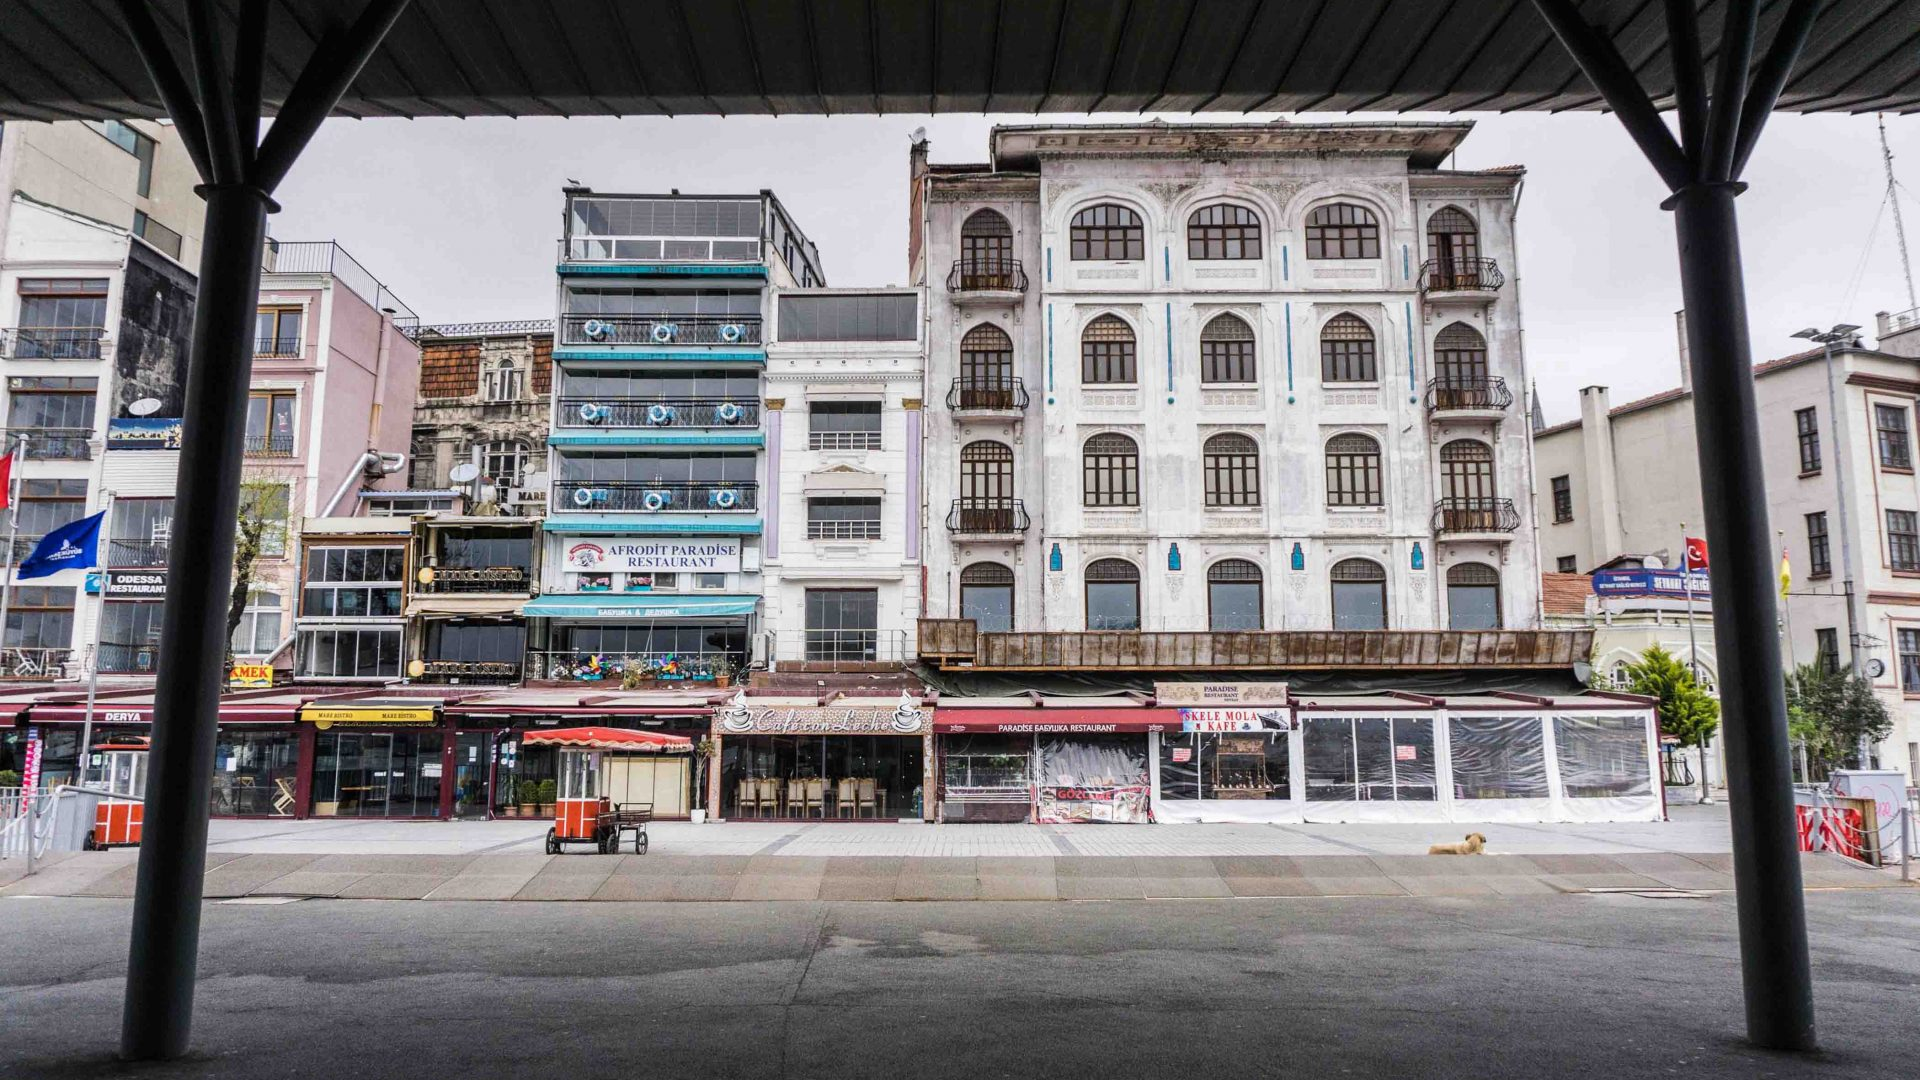 Karaköy is a waterfront district with a mix of old-school Istanbul and cool new art and bars.